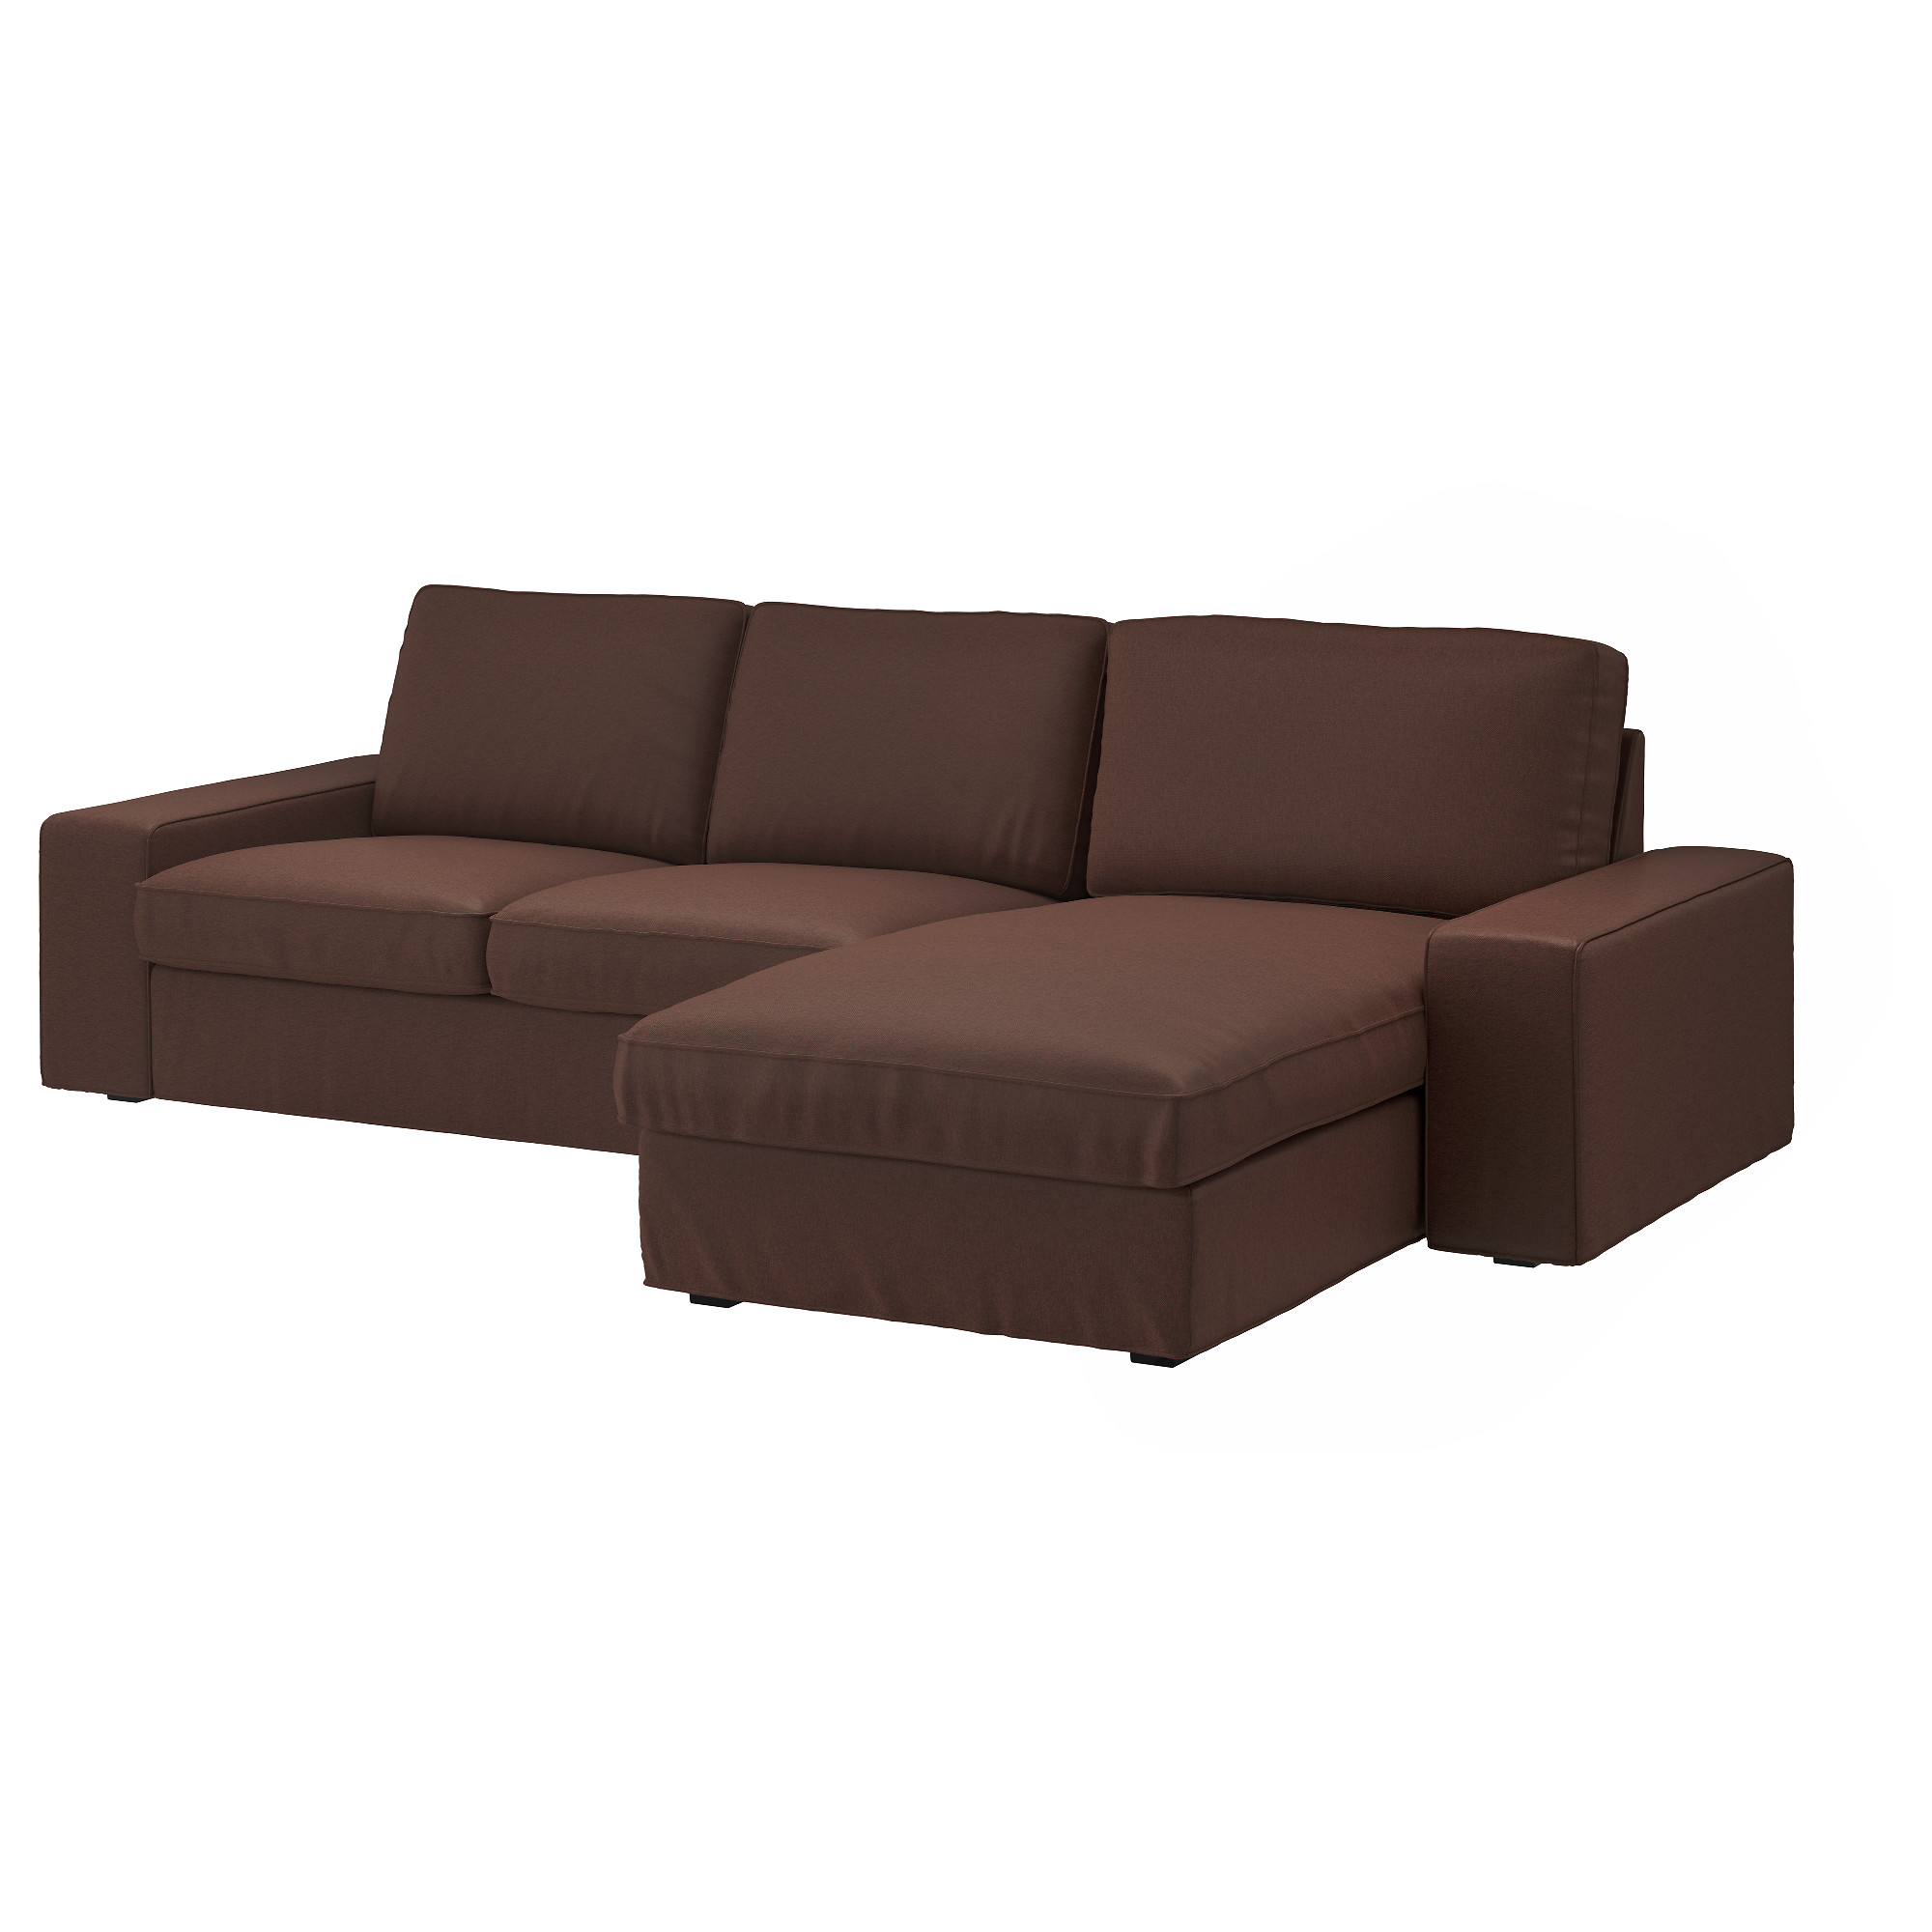 sc 1 st  Ikea : ikea sofa chaise lounge - Sectionals, Sofas & Couches